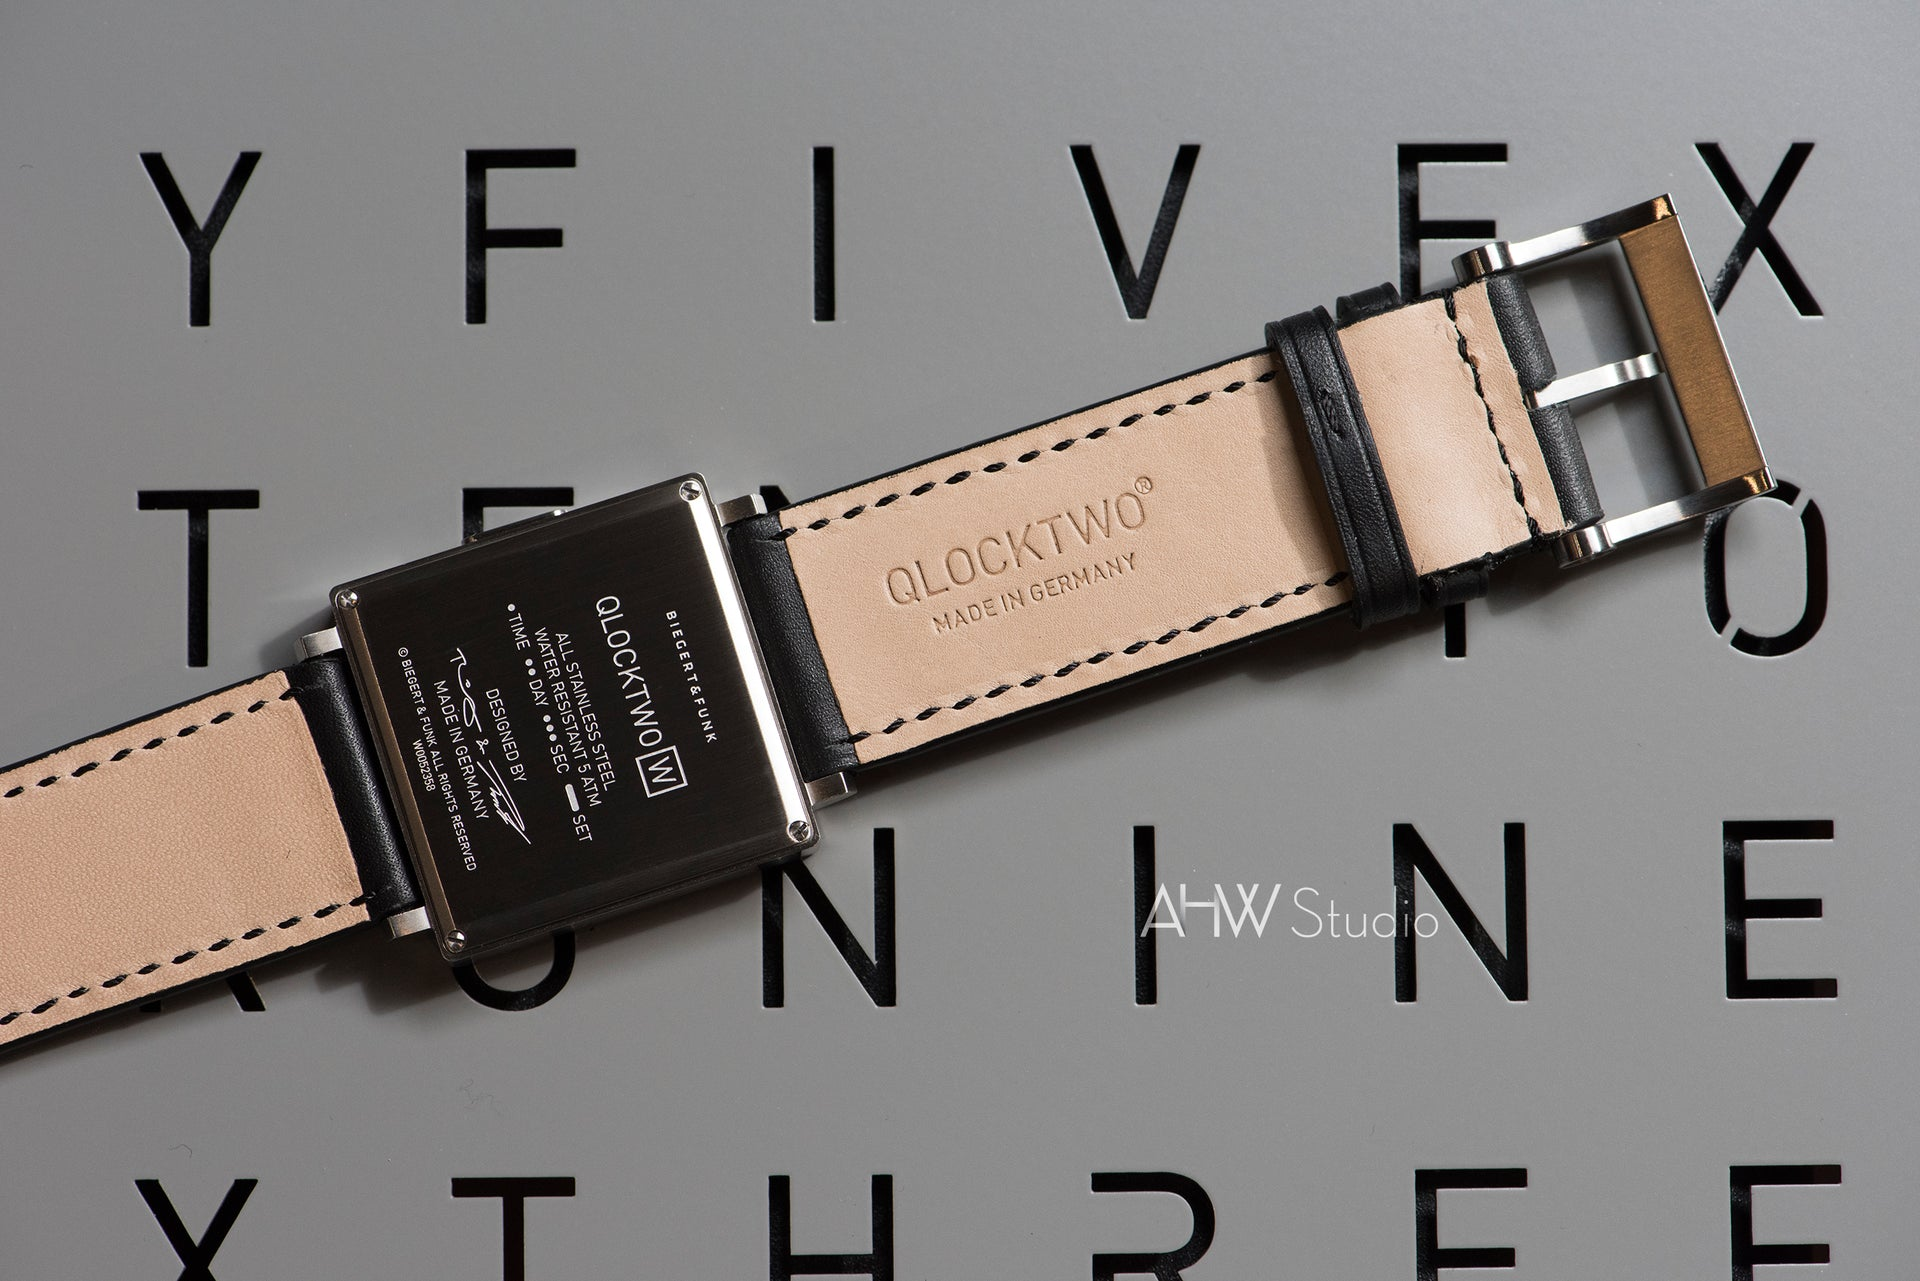 QLOCKTWO - 35mm - 'Brushed Steel' Wristwatch